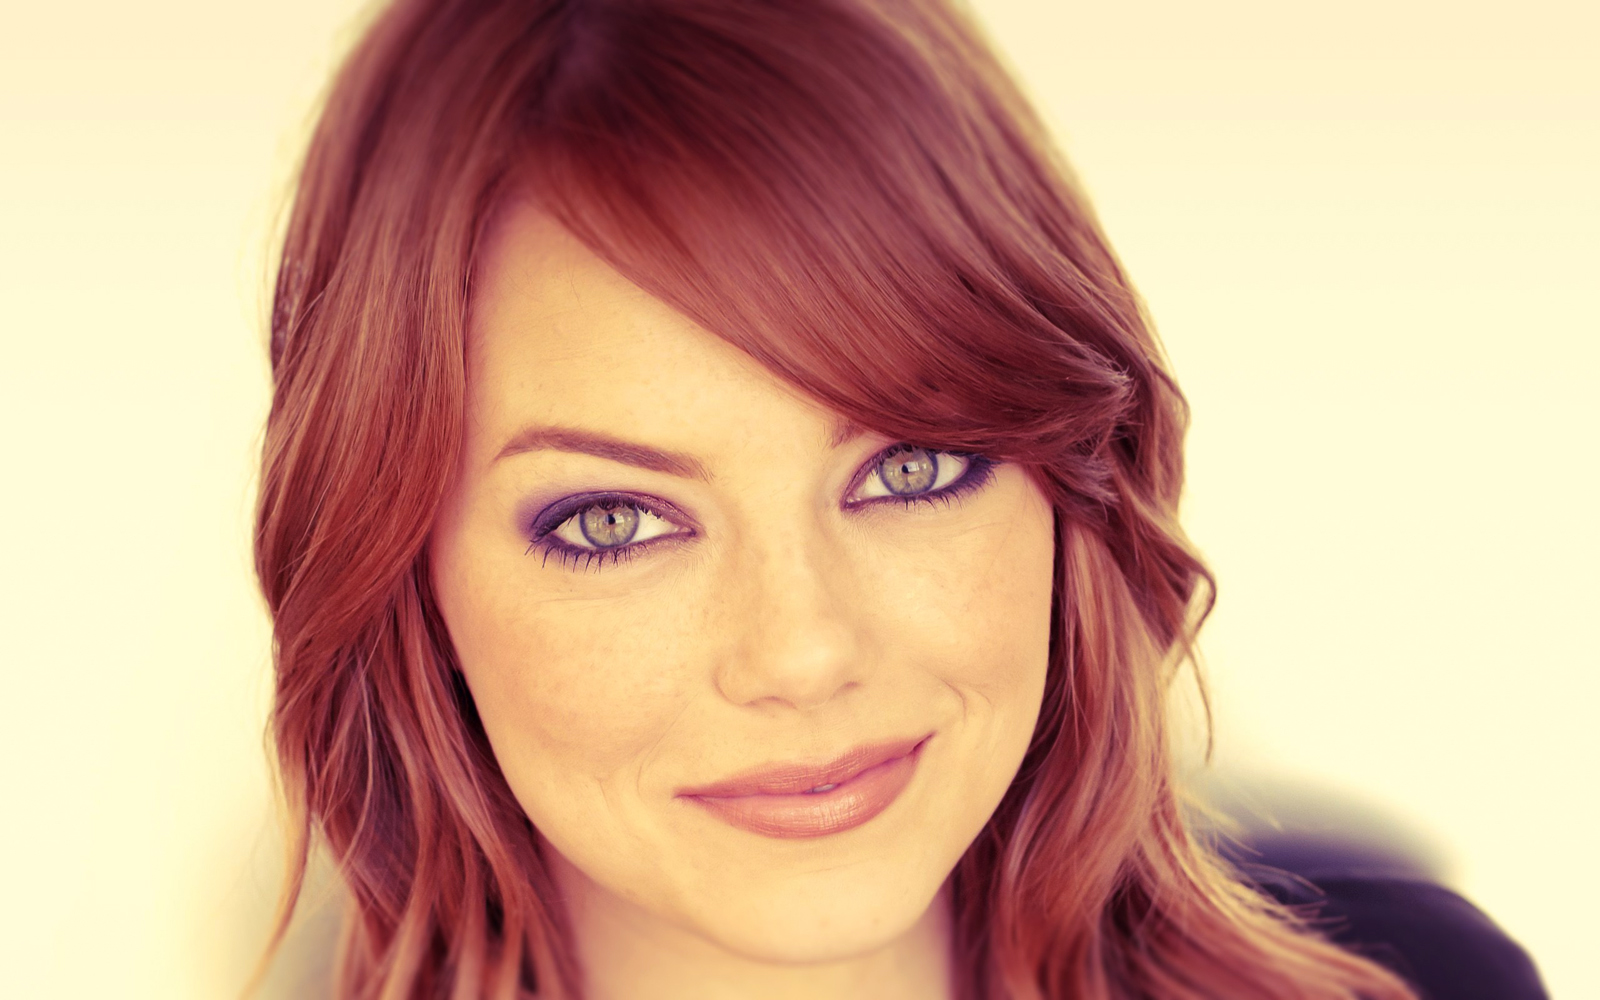 http://2.bp.blogspot.com/-44e6TH4W0_s/T9Npwl78n_I/AAAAAAAACI0/ysuqaqANOkk/s1600/Emma_Stone_Redhead_Beautiful_Photography_HD_Wallpaper-Vvallpaper.Net.jpg